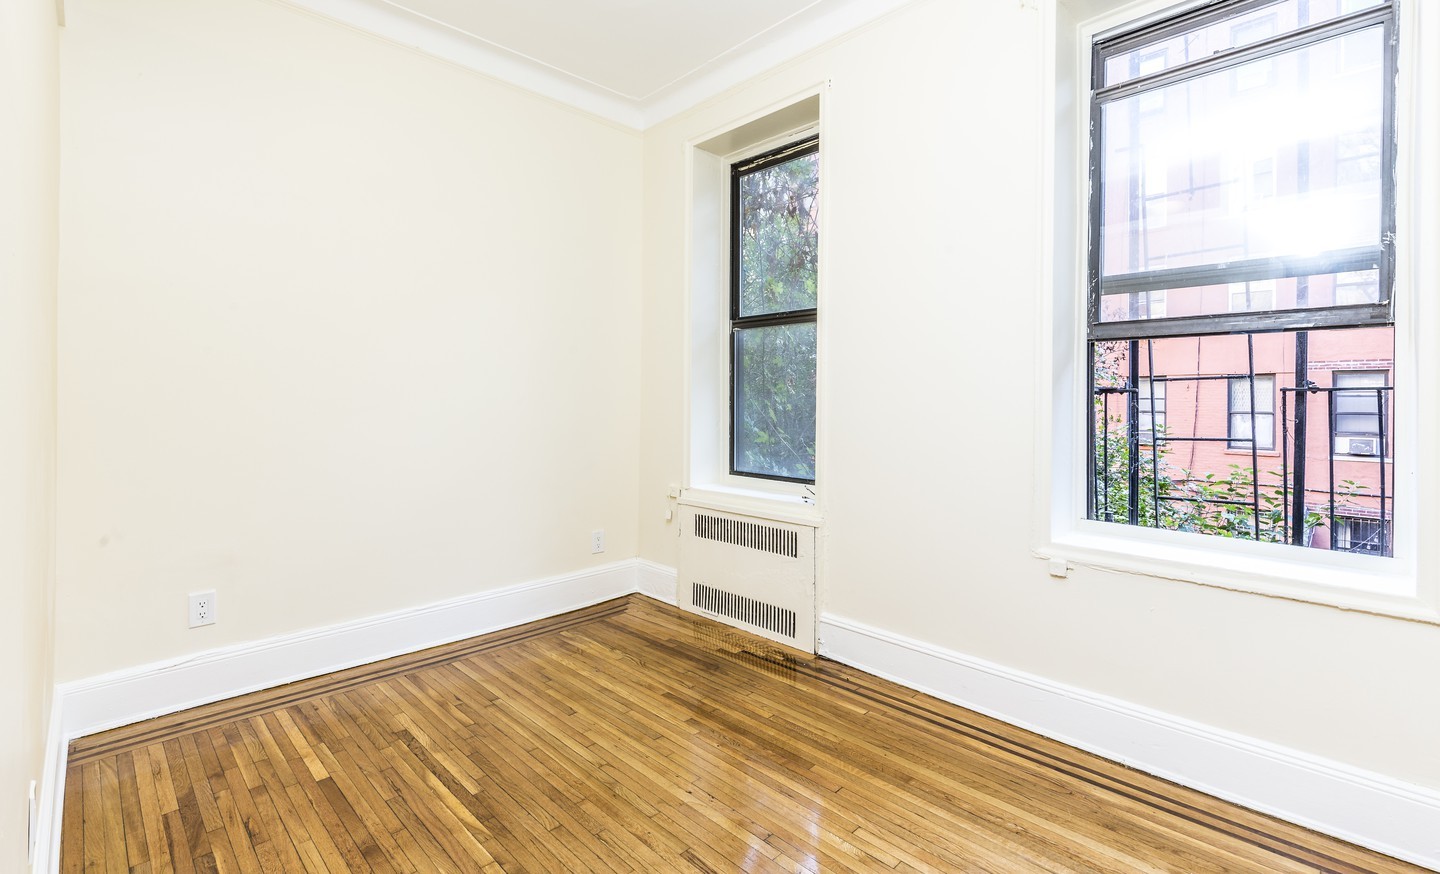 Sublets Near Bank Street Private Bedroom in East Village Apartment with Exposed Brick and Hardwood Floors for Bank Street College of Education Students in New York, NY